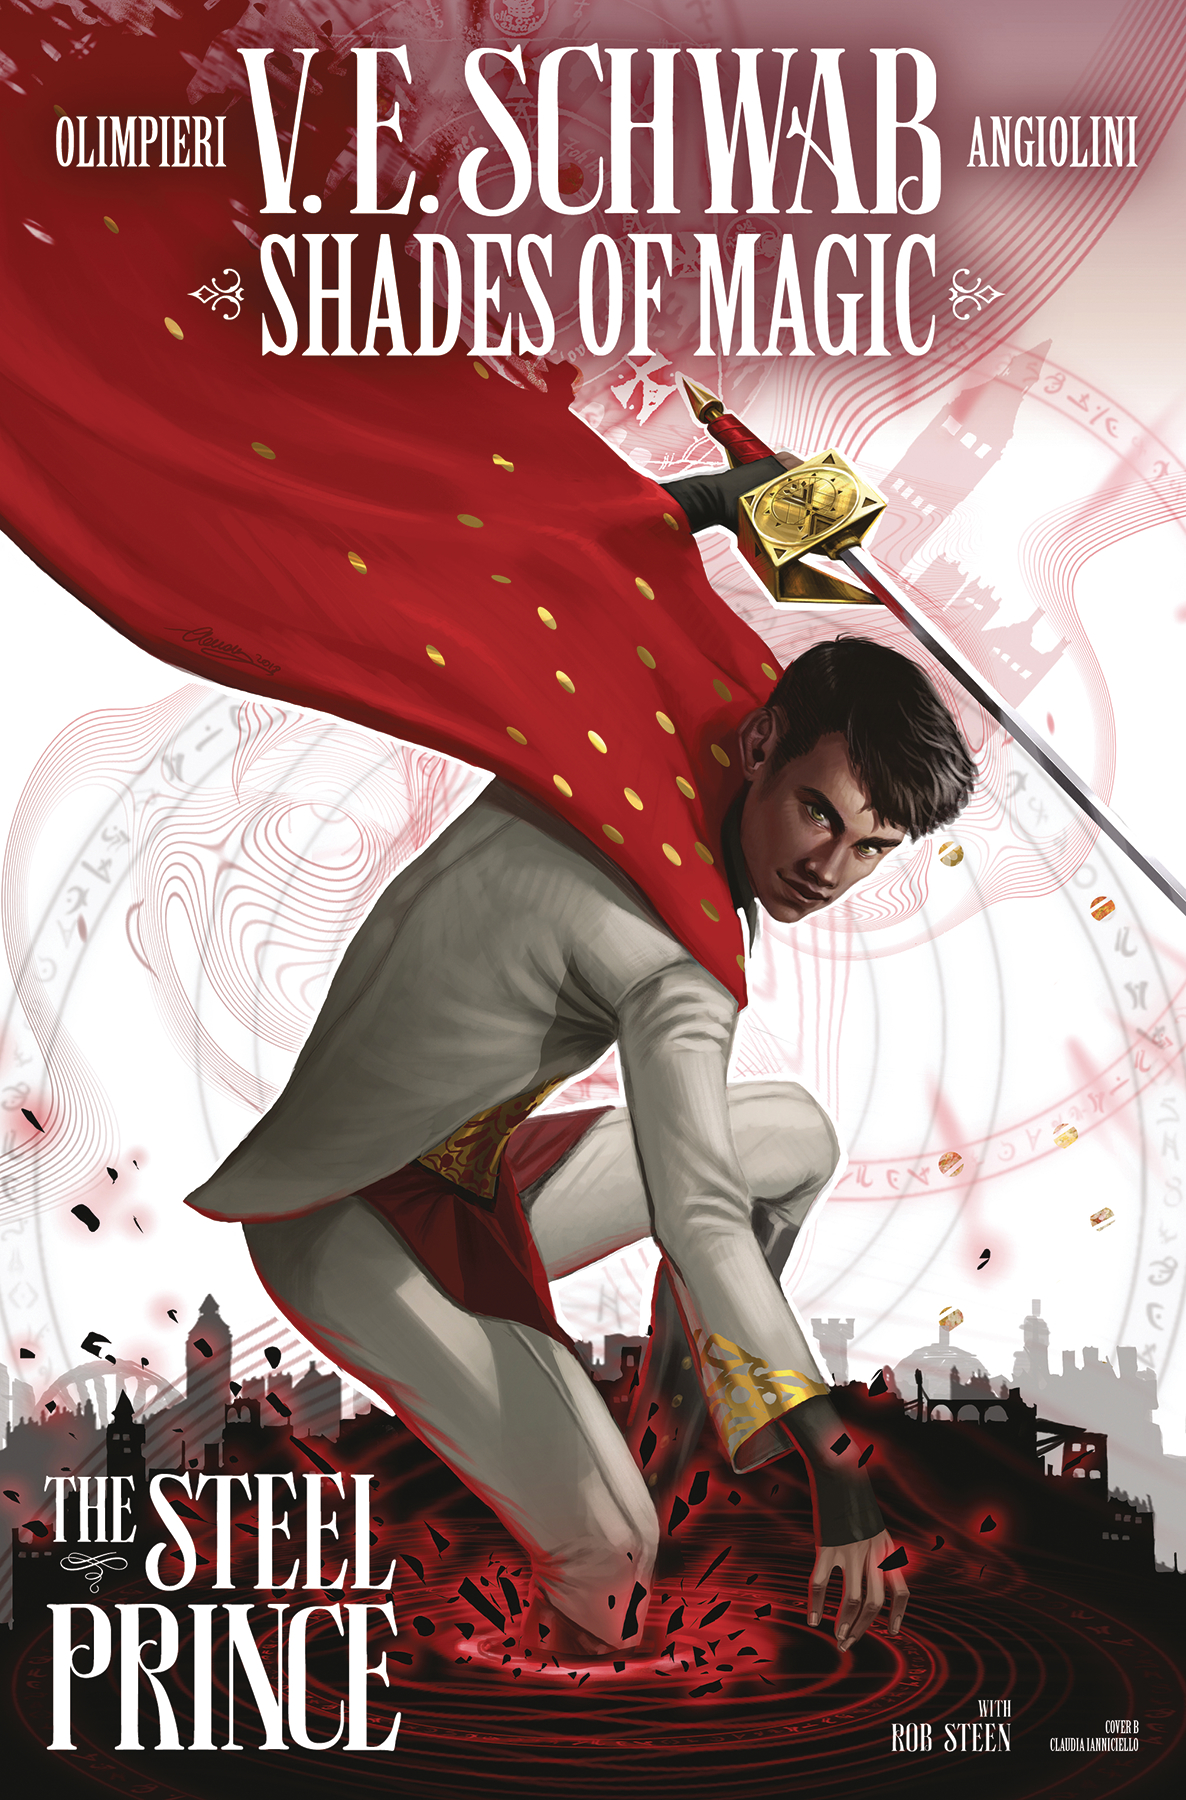 SHADES OF MAGIC #2 (OF 4) STEEL PRINCE CVR B IANNICEILLO